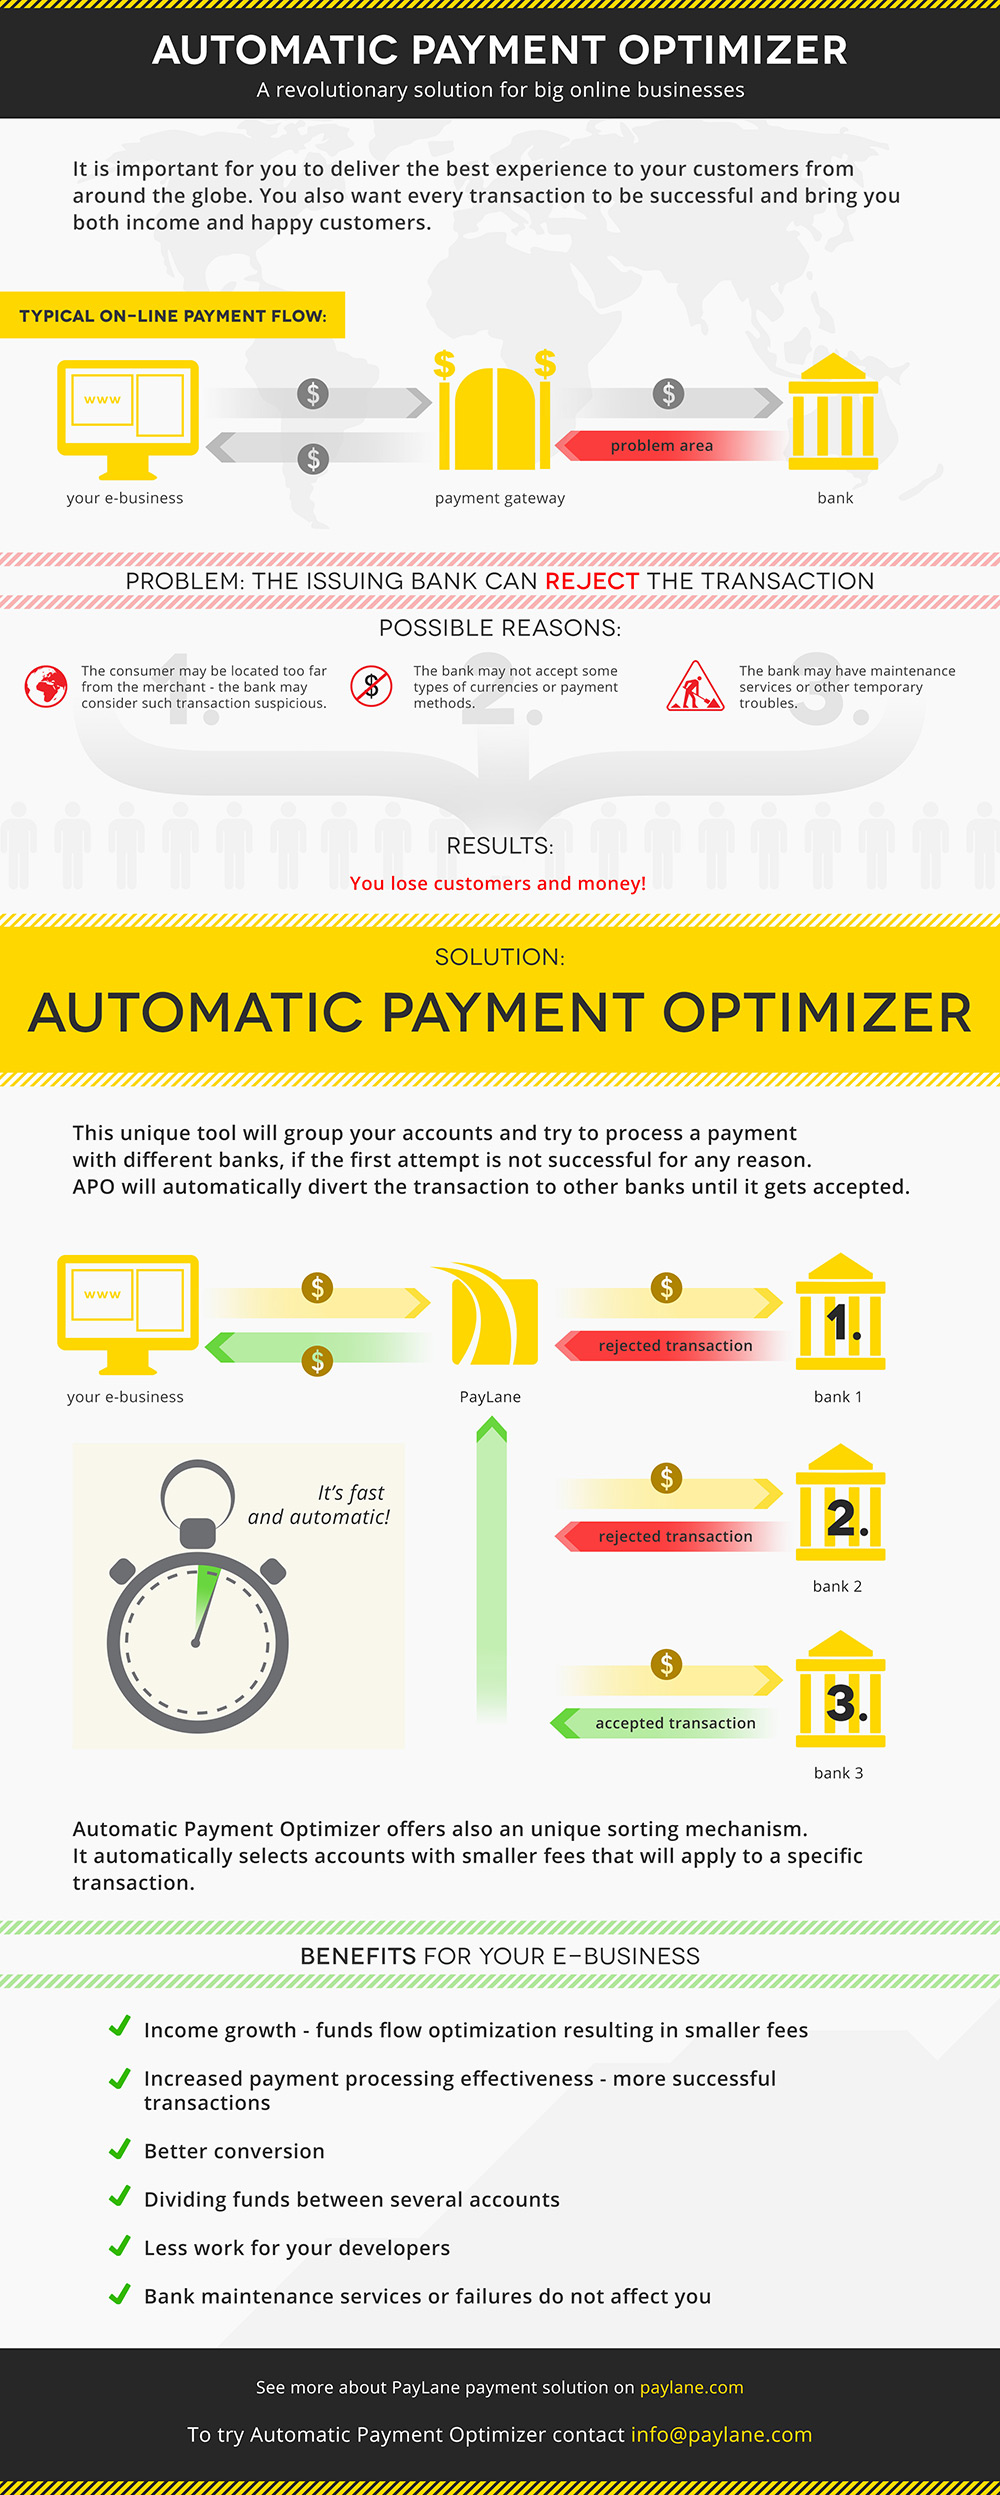 Automatic Payment Optimizer